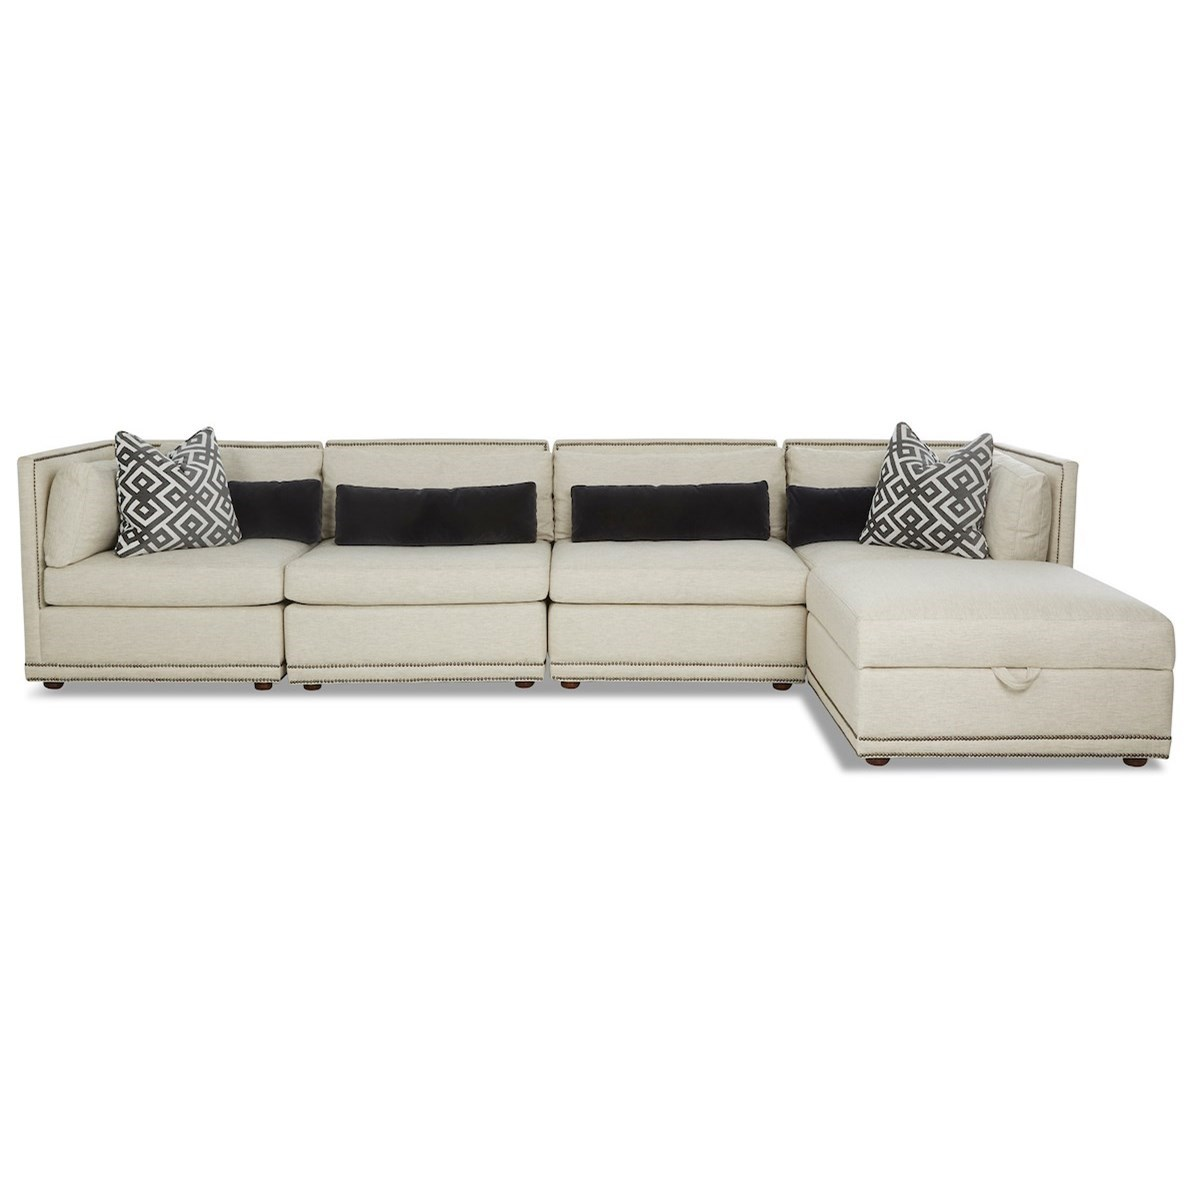 Rexford 5-Seat Sectional Chaise Sofa by Klaussner at Northeast Factory Direct